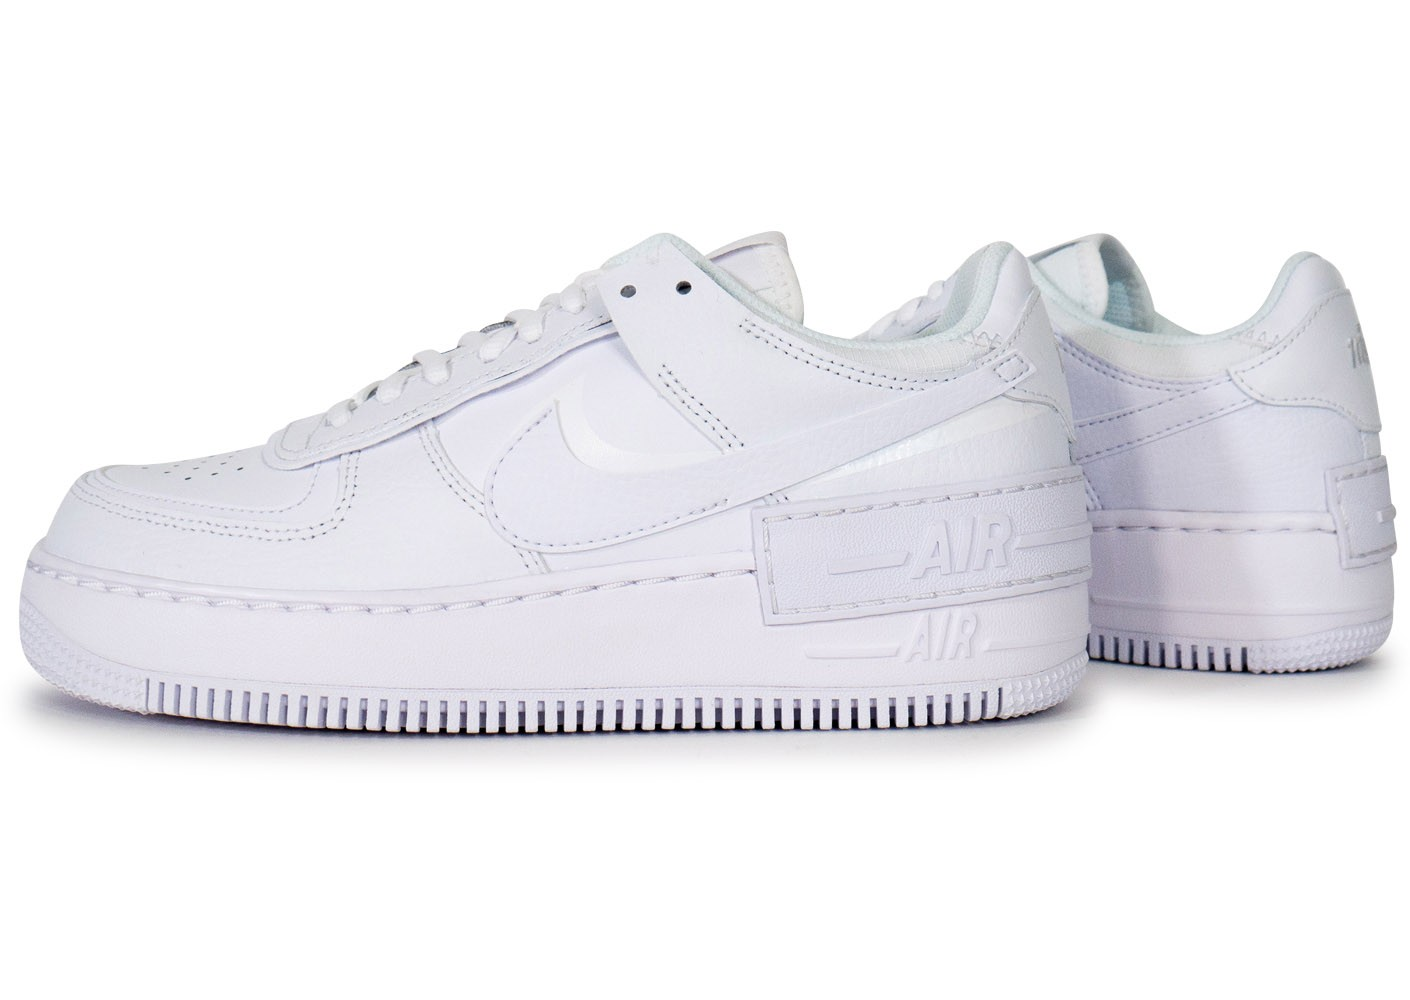 Nike Air Force 1 Shadow triple blanc femme - Chaussures ...